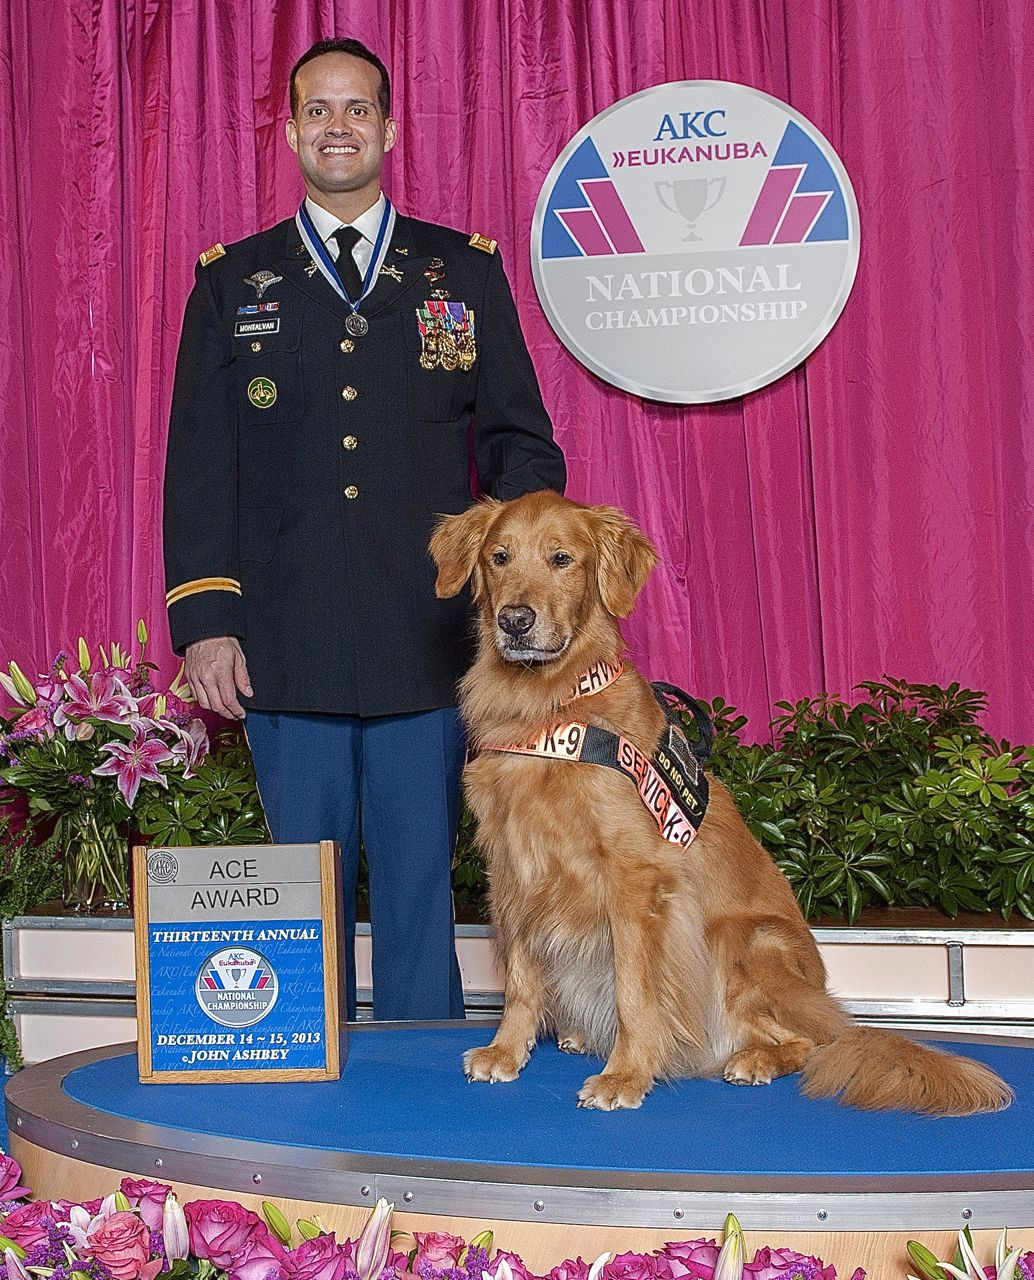 2013 American Kennel Club Akc Eukanuba National Championship